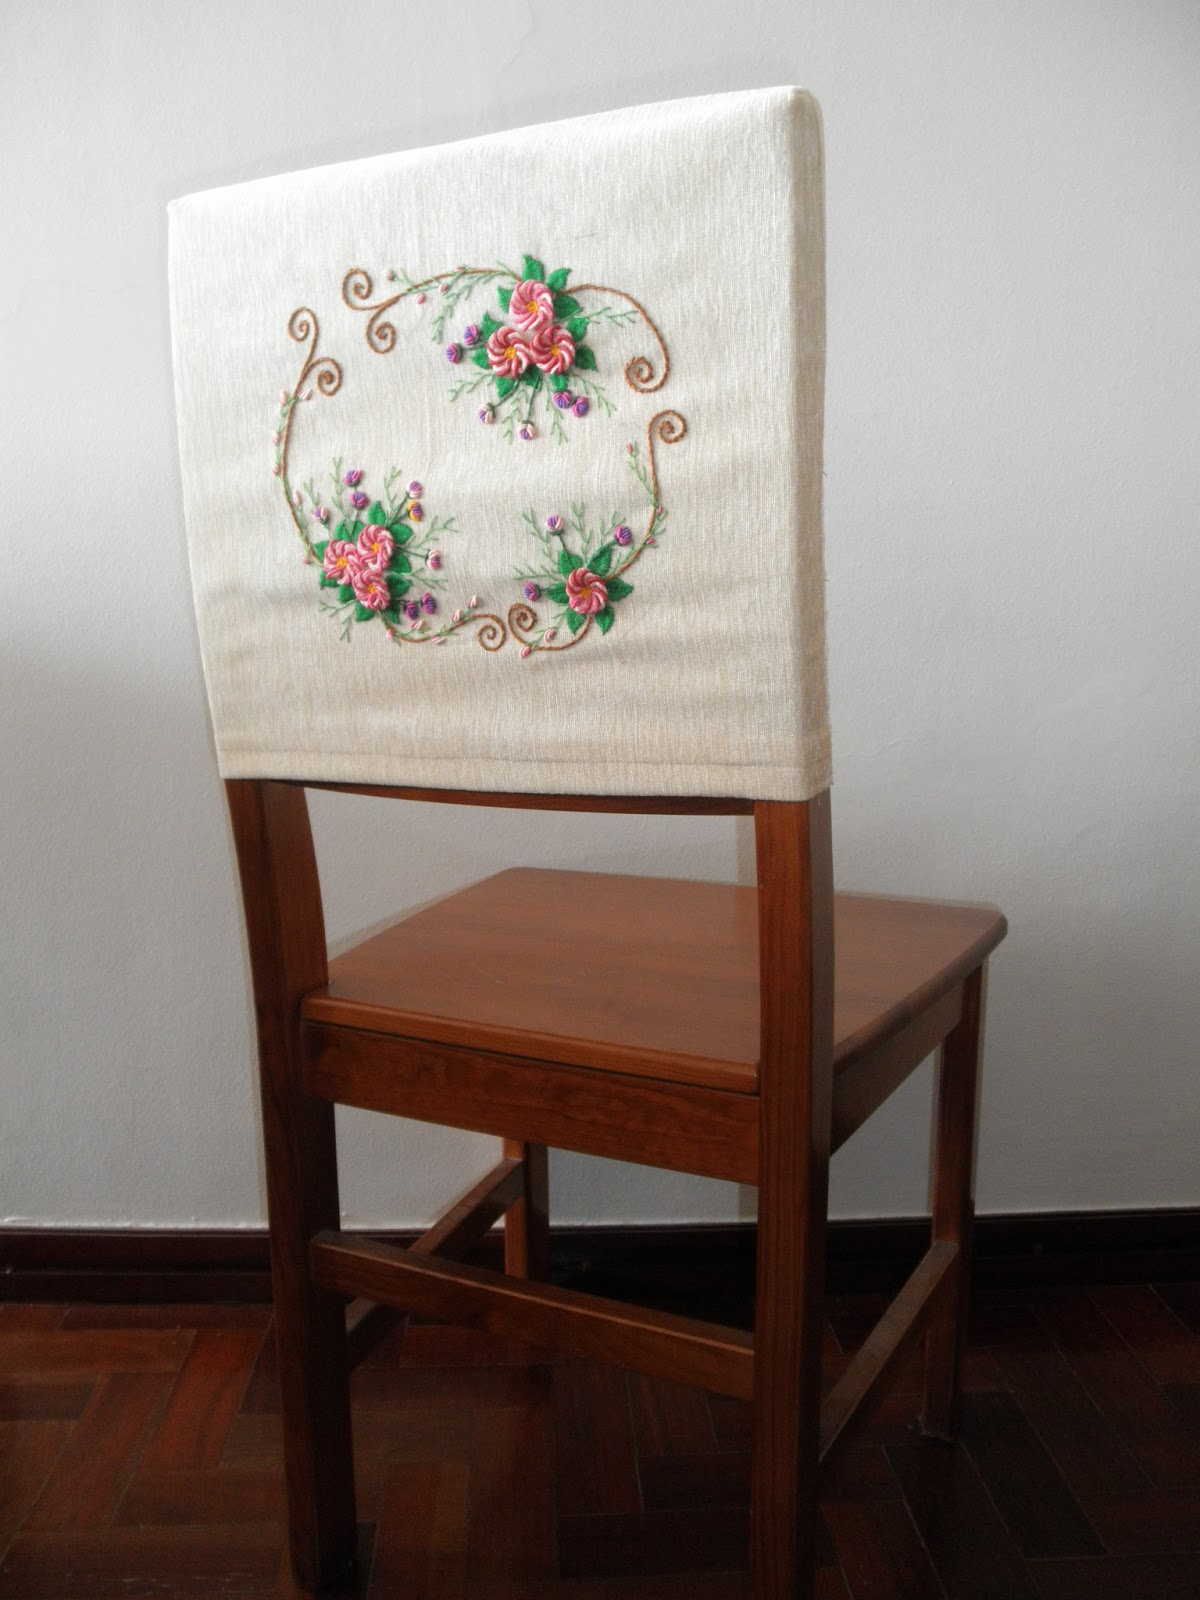 ... To Make This Simple Chair Back Cover Quite Some Time Ago, I Simply  Wanted To Put Some Embellishment I Hadnu0027t Really Thought About The  Embroidery Design, ...